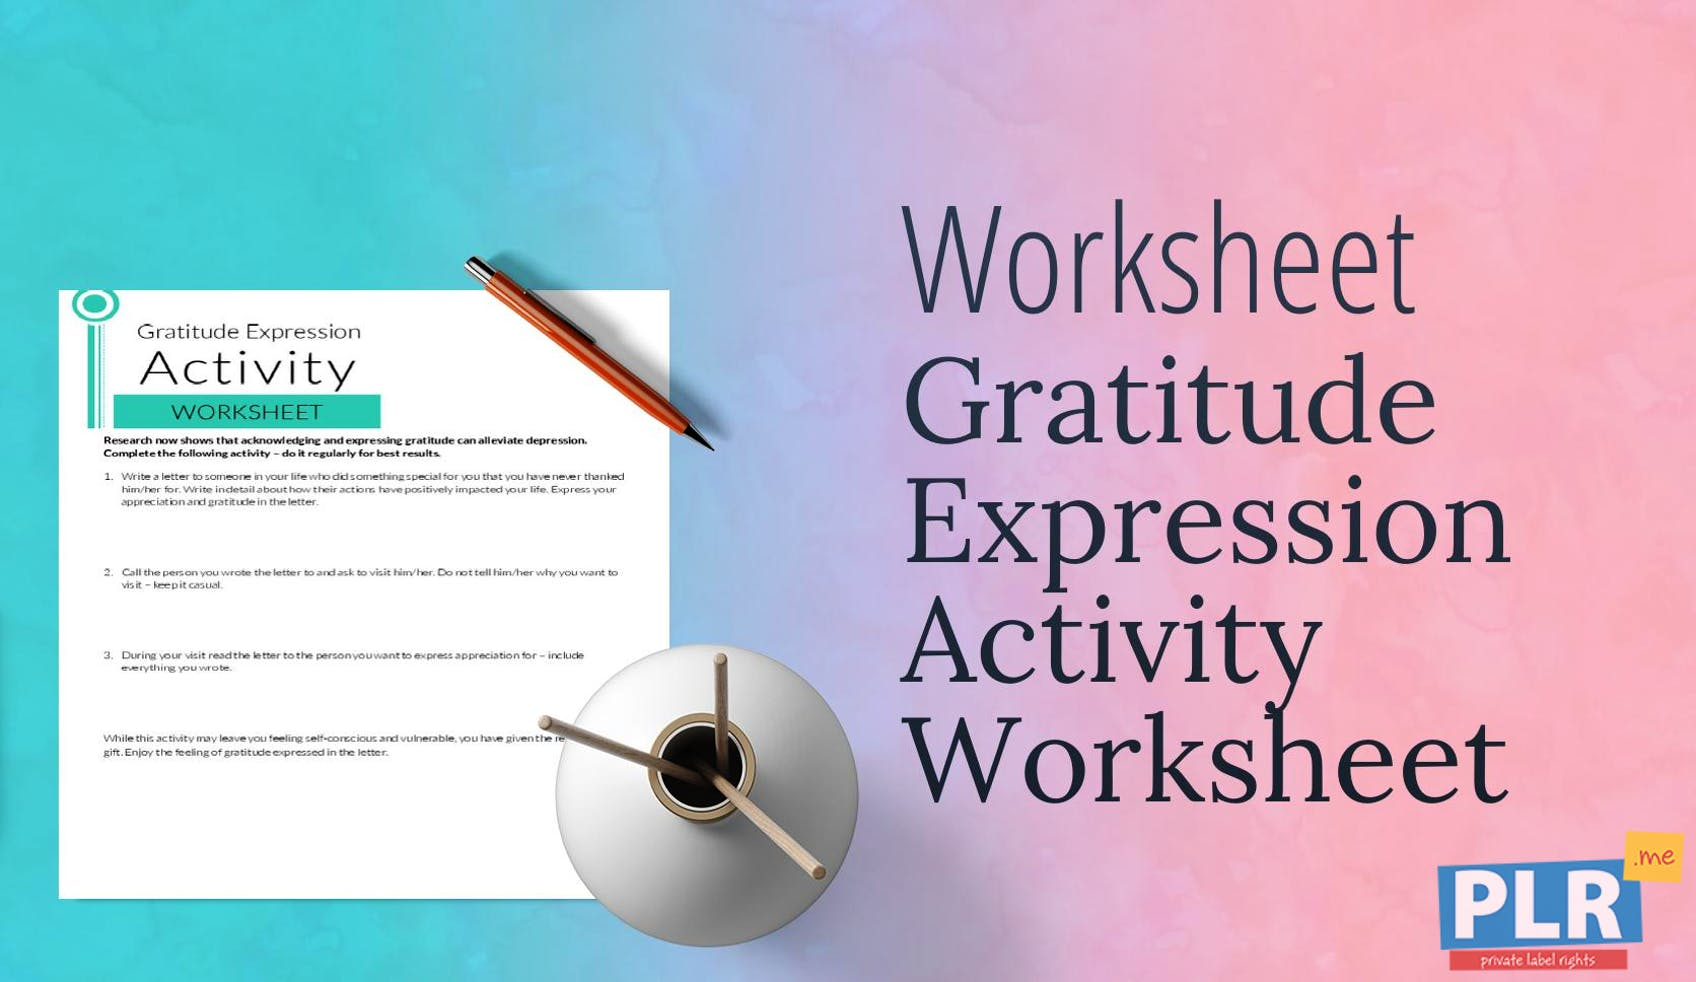 Plr Worksheets Gratitude Expression Activity Worksheet Plr